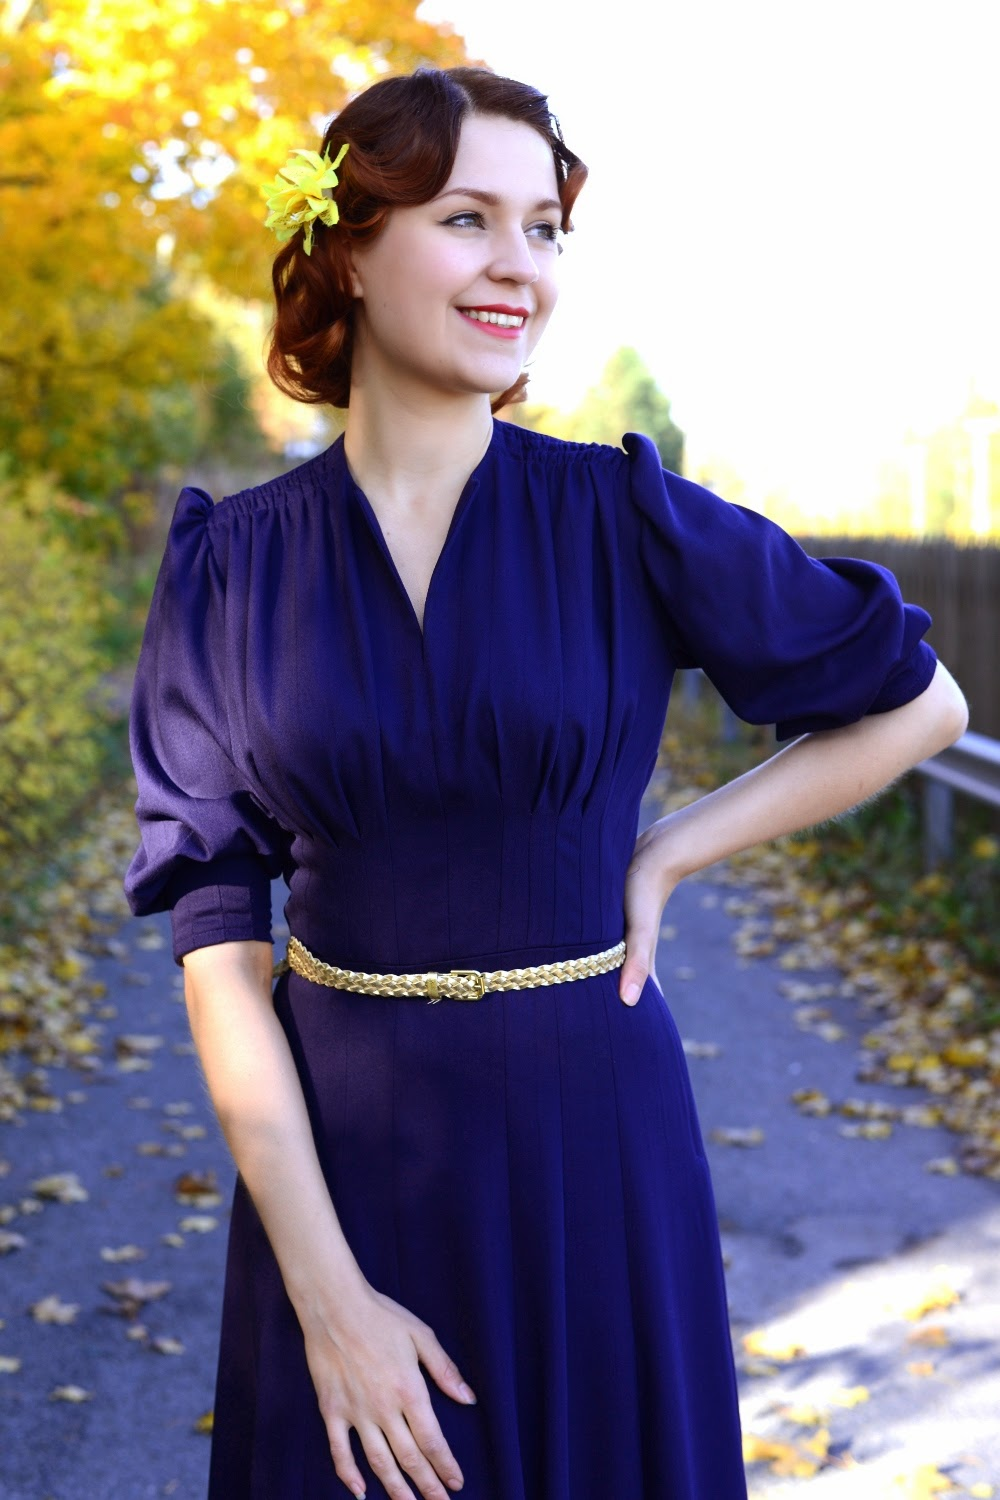 Purple rayon 40s reproduction dress at VintageFollies by CheriseDesign